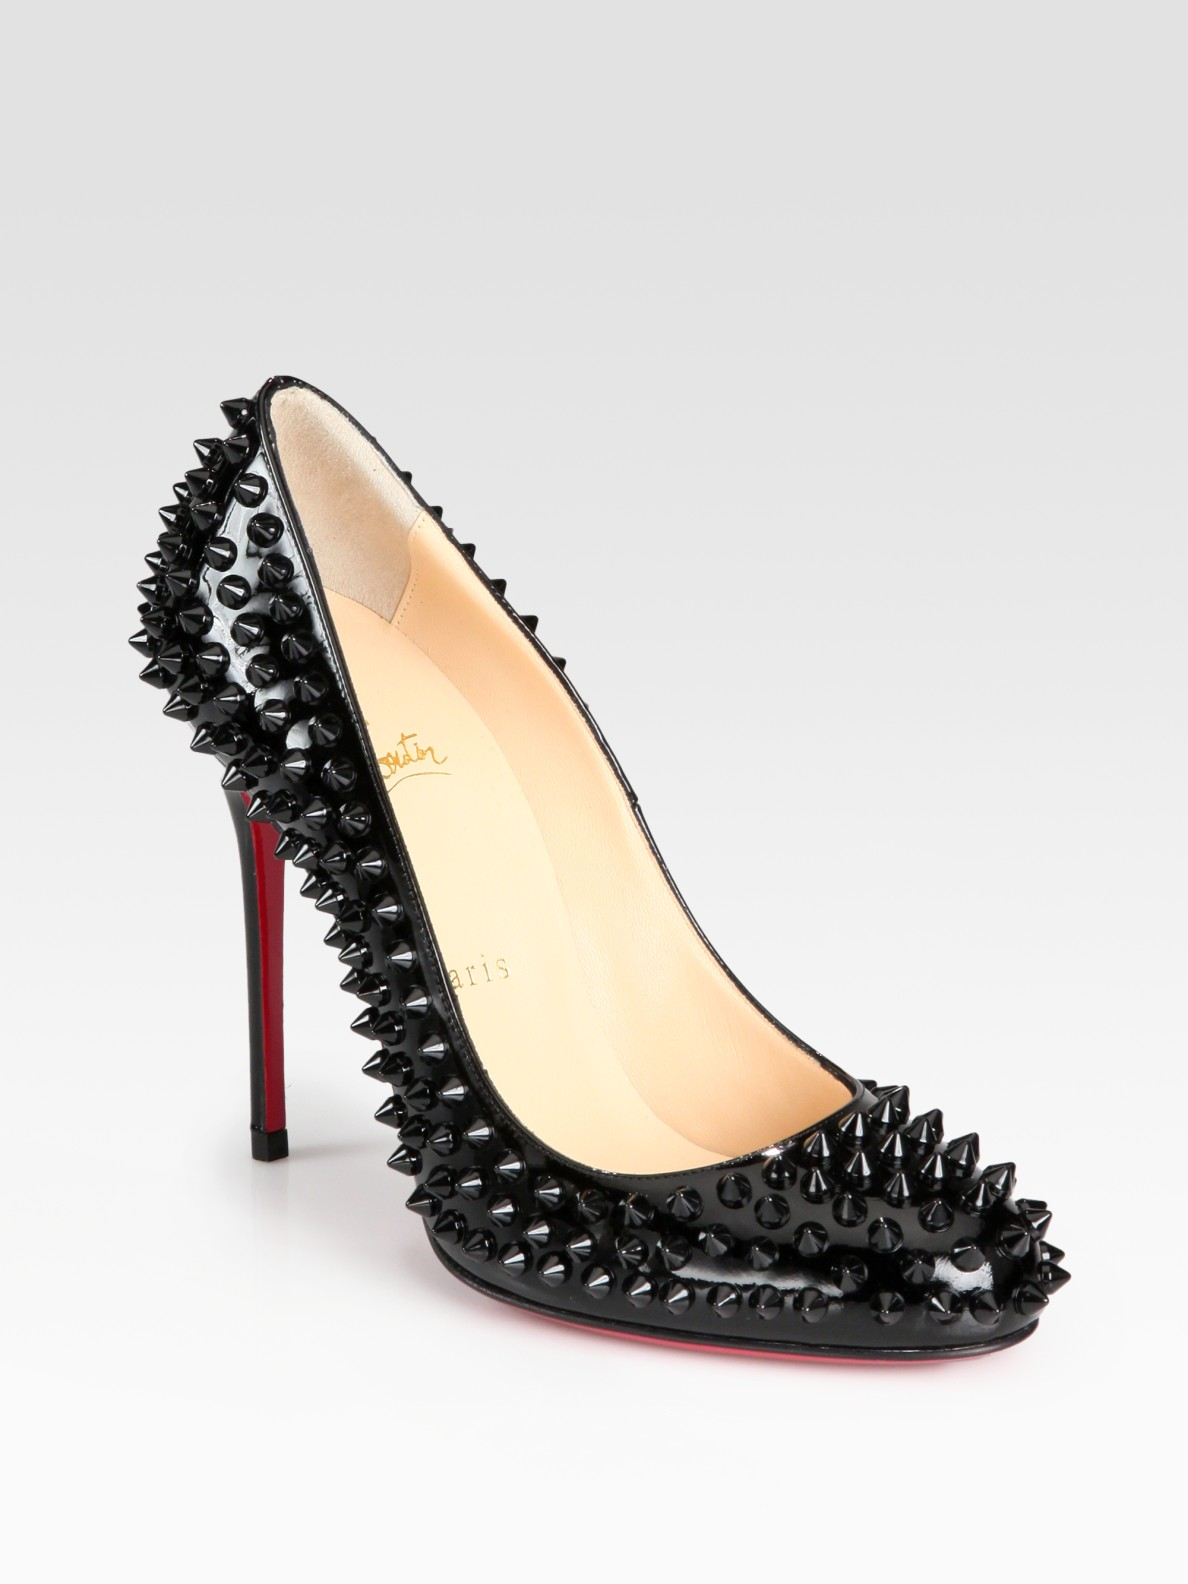 34fc5a6f88d ... top quality lyst christian louboutin fifi spiked patent leather pumps  in black 73713 a56b6